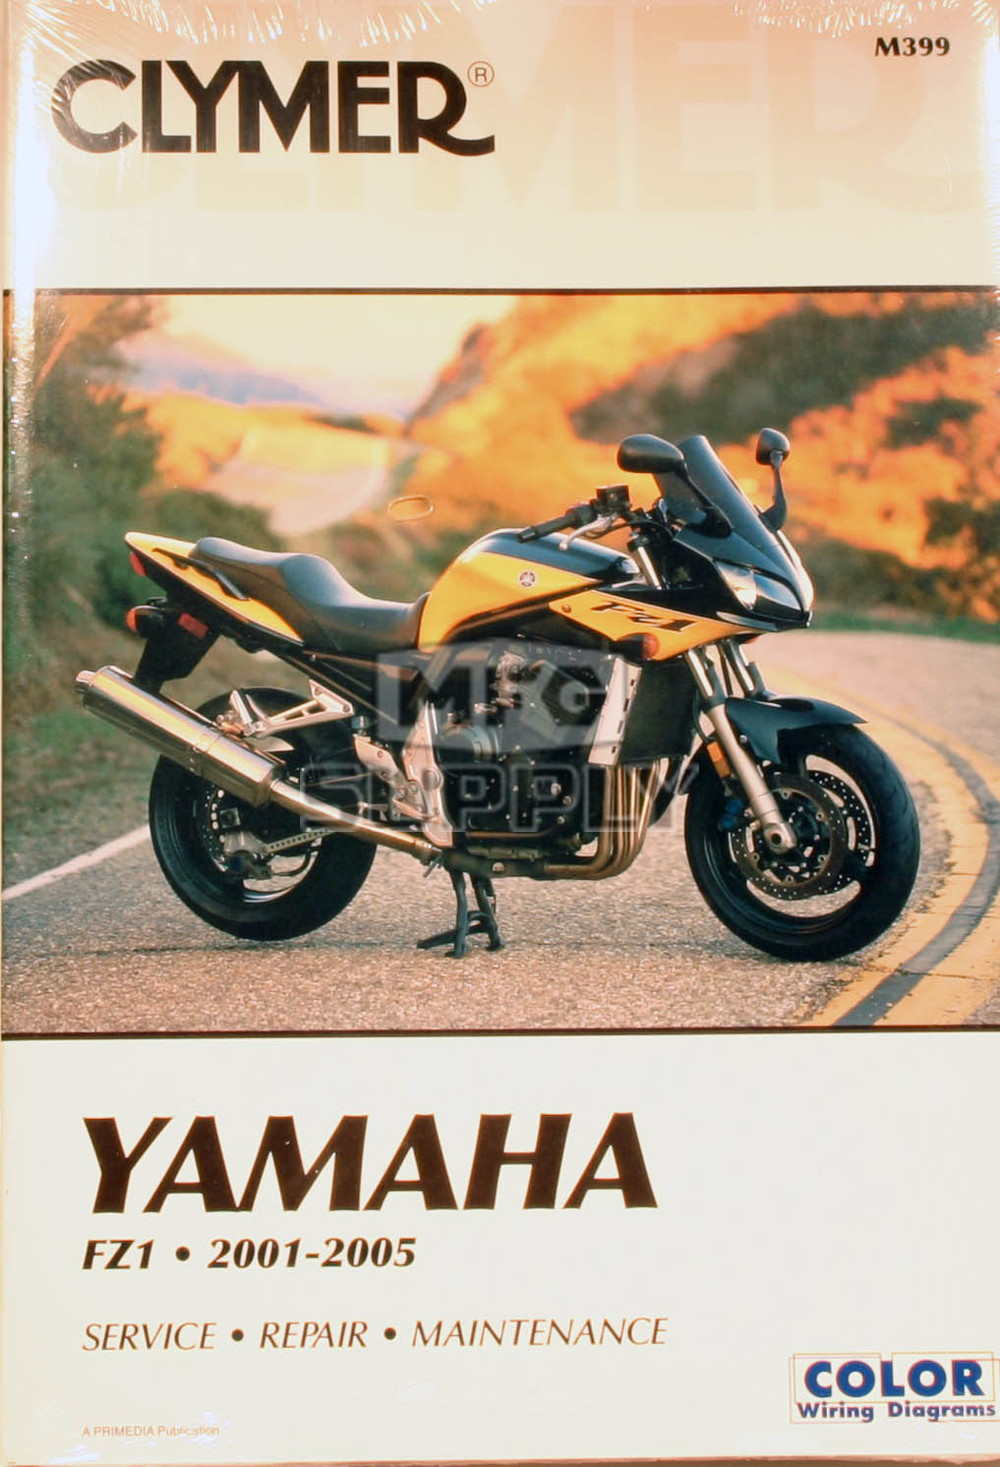 hight resolution of cm399 01 05 yamaha fz1 repair maintenance manual